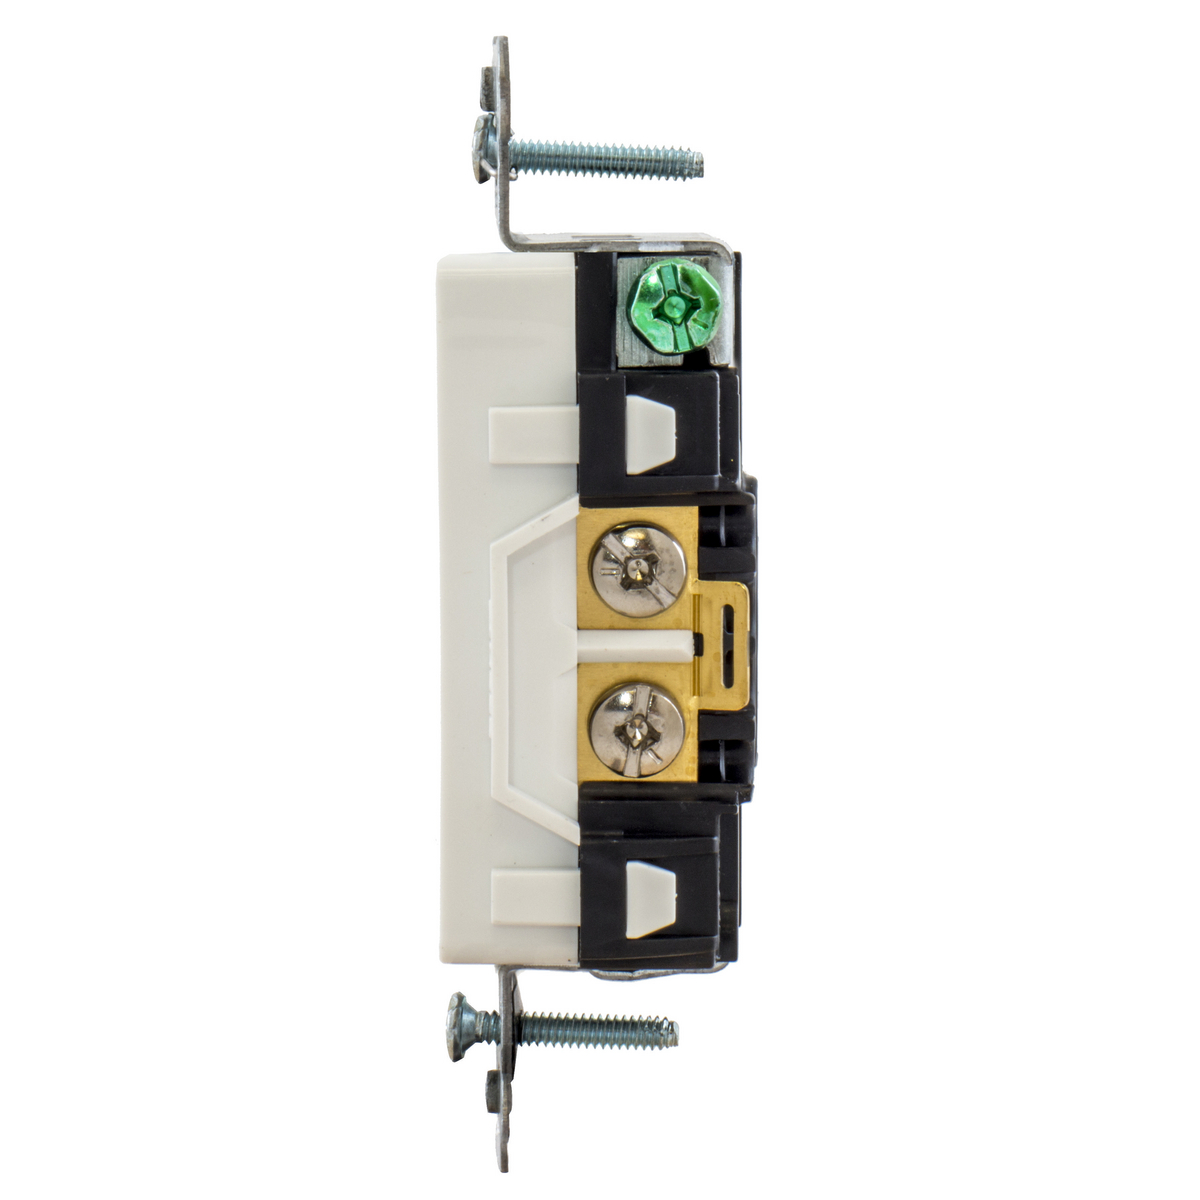 Hubbell Wiring Device Kellems Cross Reference - Wiring Solutions